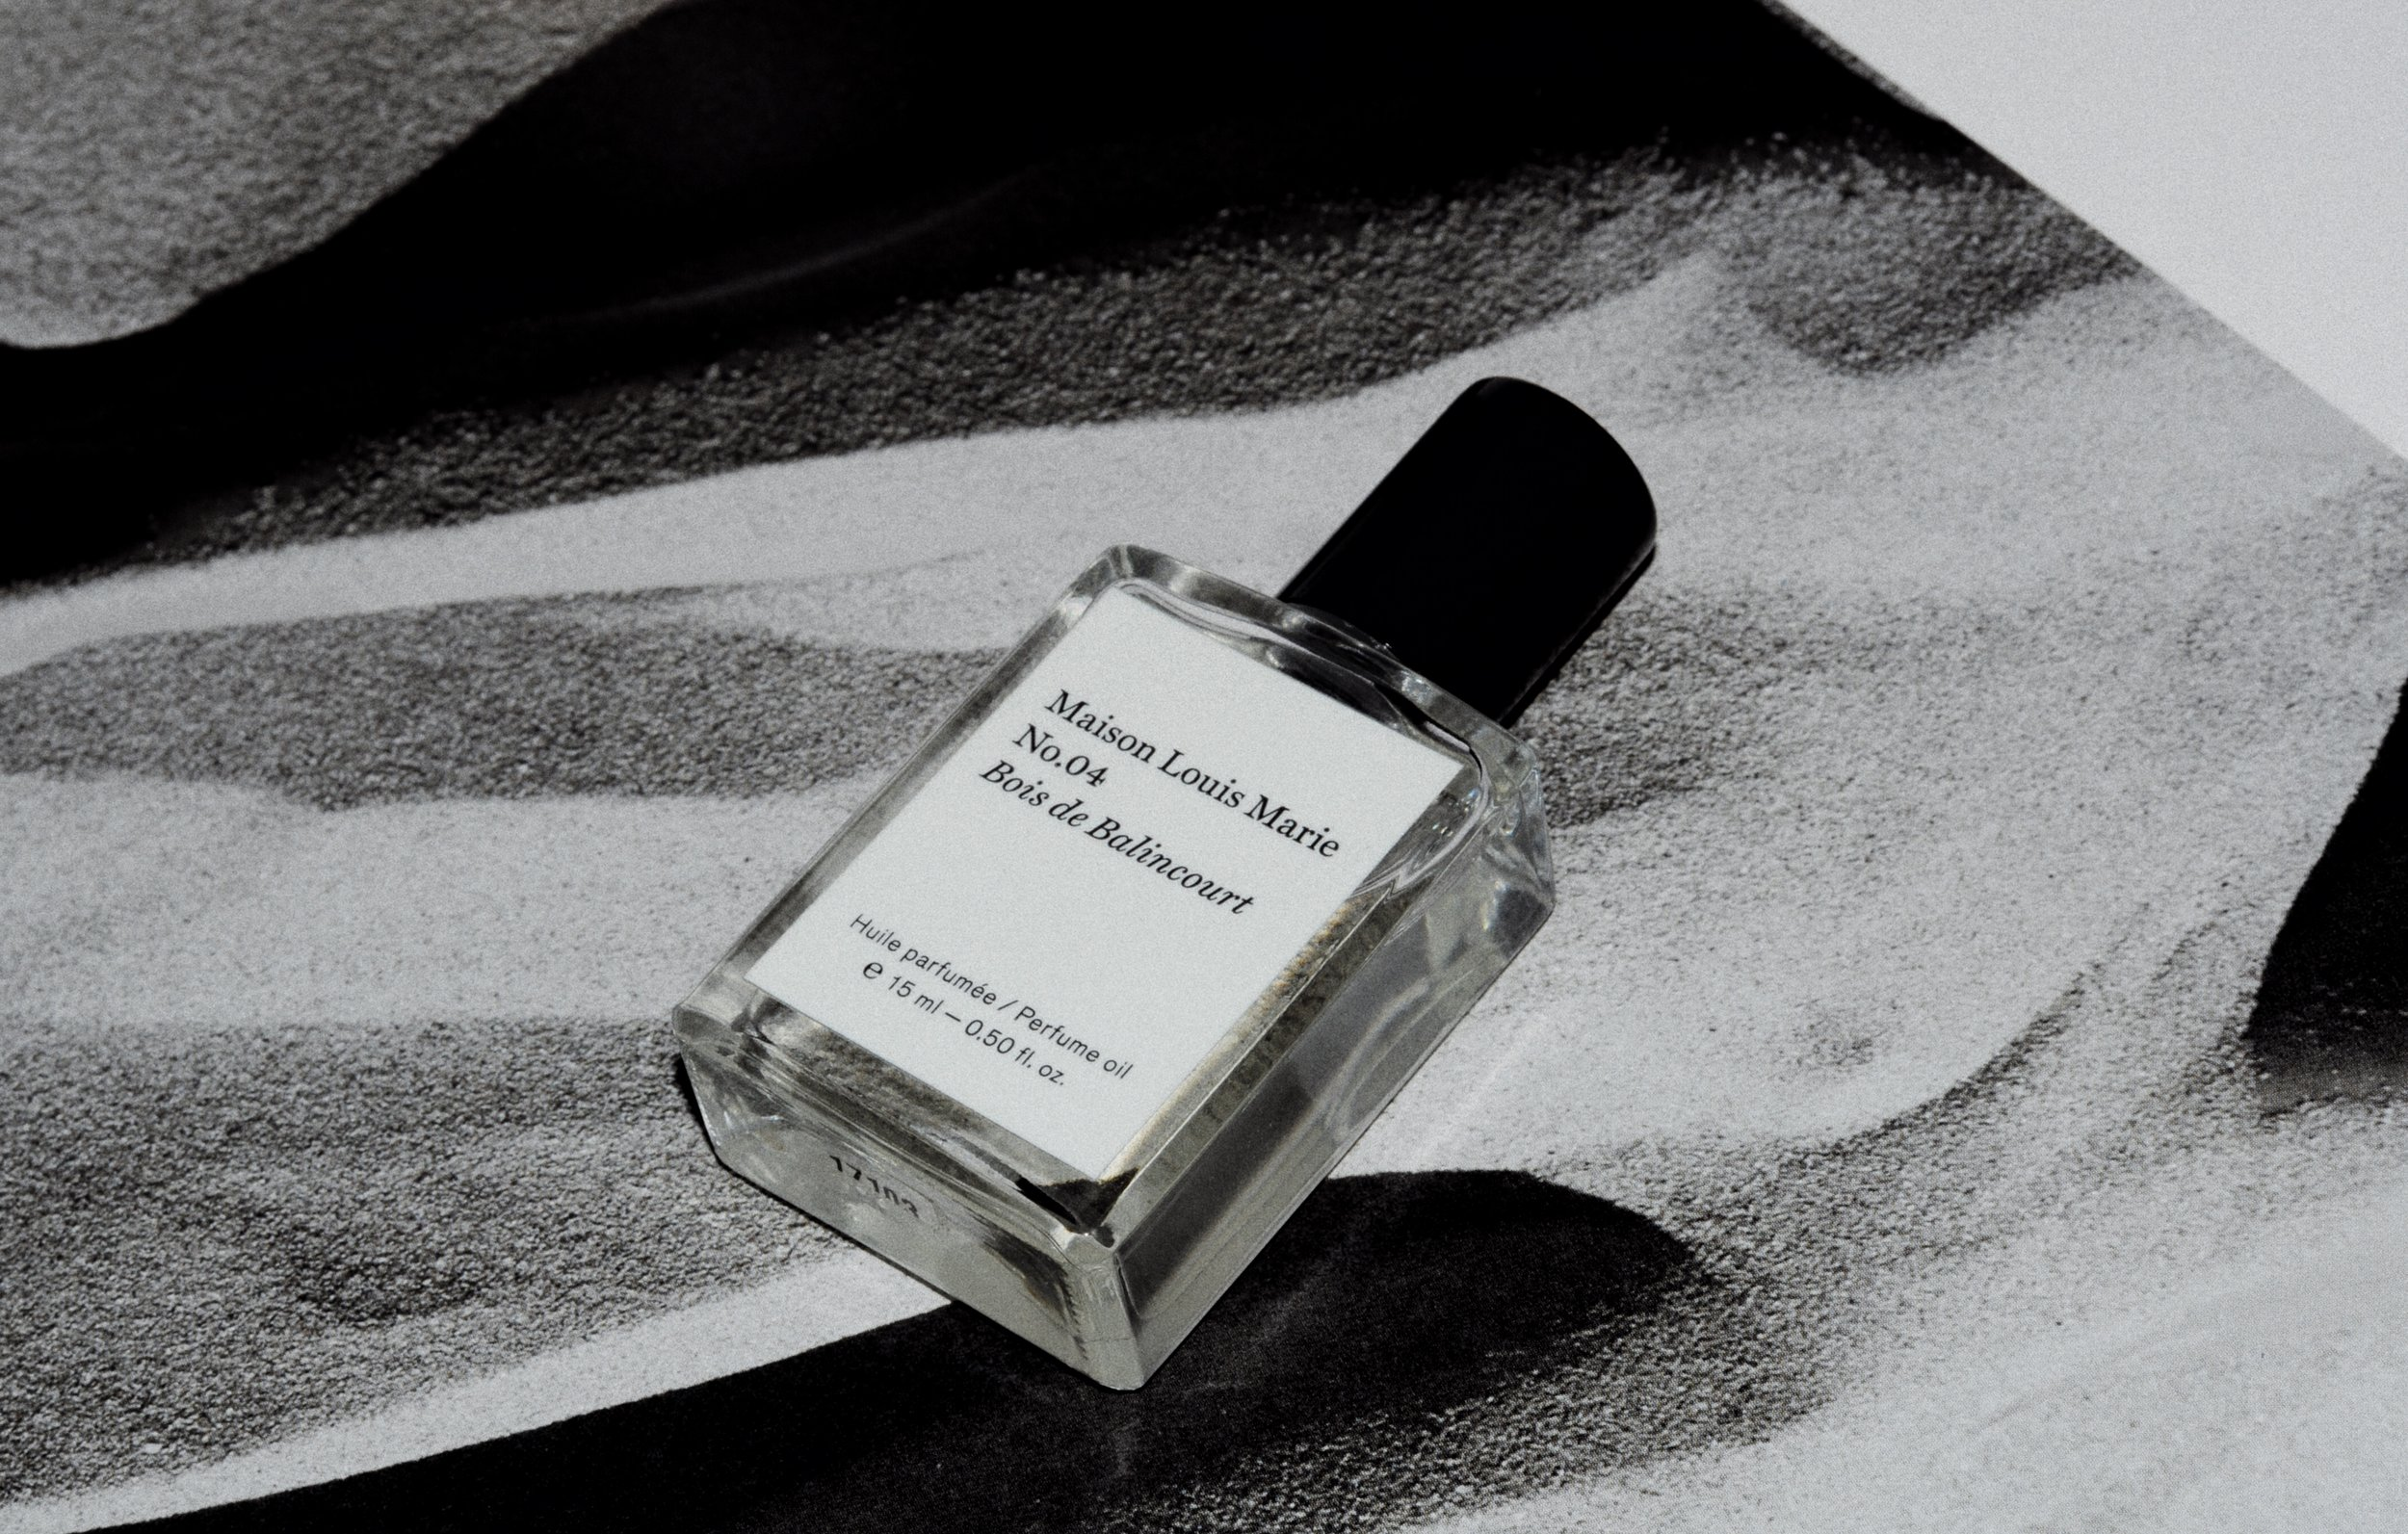 - MAISON LOUIS MARIE - No. 04 BOIS DE BALINCOURT: MLM offers an incredible selection of scents at relatively affordable prices. They have quickly become one of my favorite brands for the quality of the scents and gorgeous packaging.This scent is THE perfect stand alone or layering scent. It's small, but mighty. Since it's a perfume oil, you only need a few drops to smell incredible all day. These are also great for prolonging the scent of your traditional Eau de Parfums and combining scents.This fragrance is an almost dupe for Le Labo's popular Santal33 and Diptyque's Tam Dao.It's the perfect combination of woods and light spices that make this perfectly unisex and everyday wear.Notes include: Sandalwood, Cedarwood, Vetiver, Nutmeg, Cinnamon, and Amber Wood.